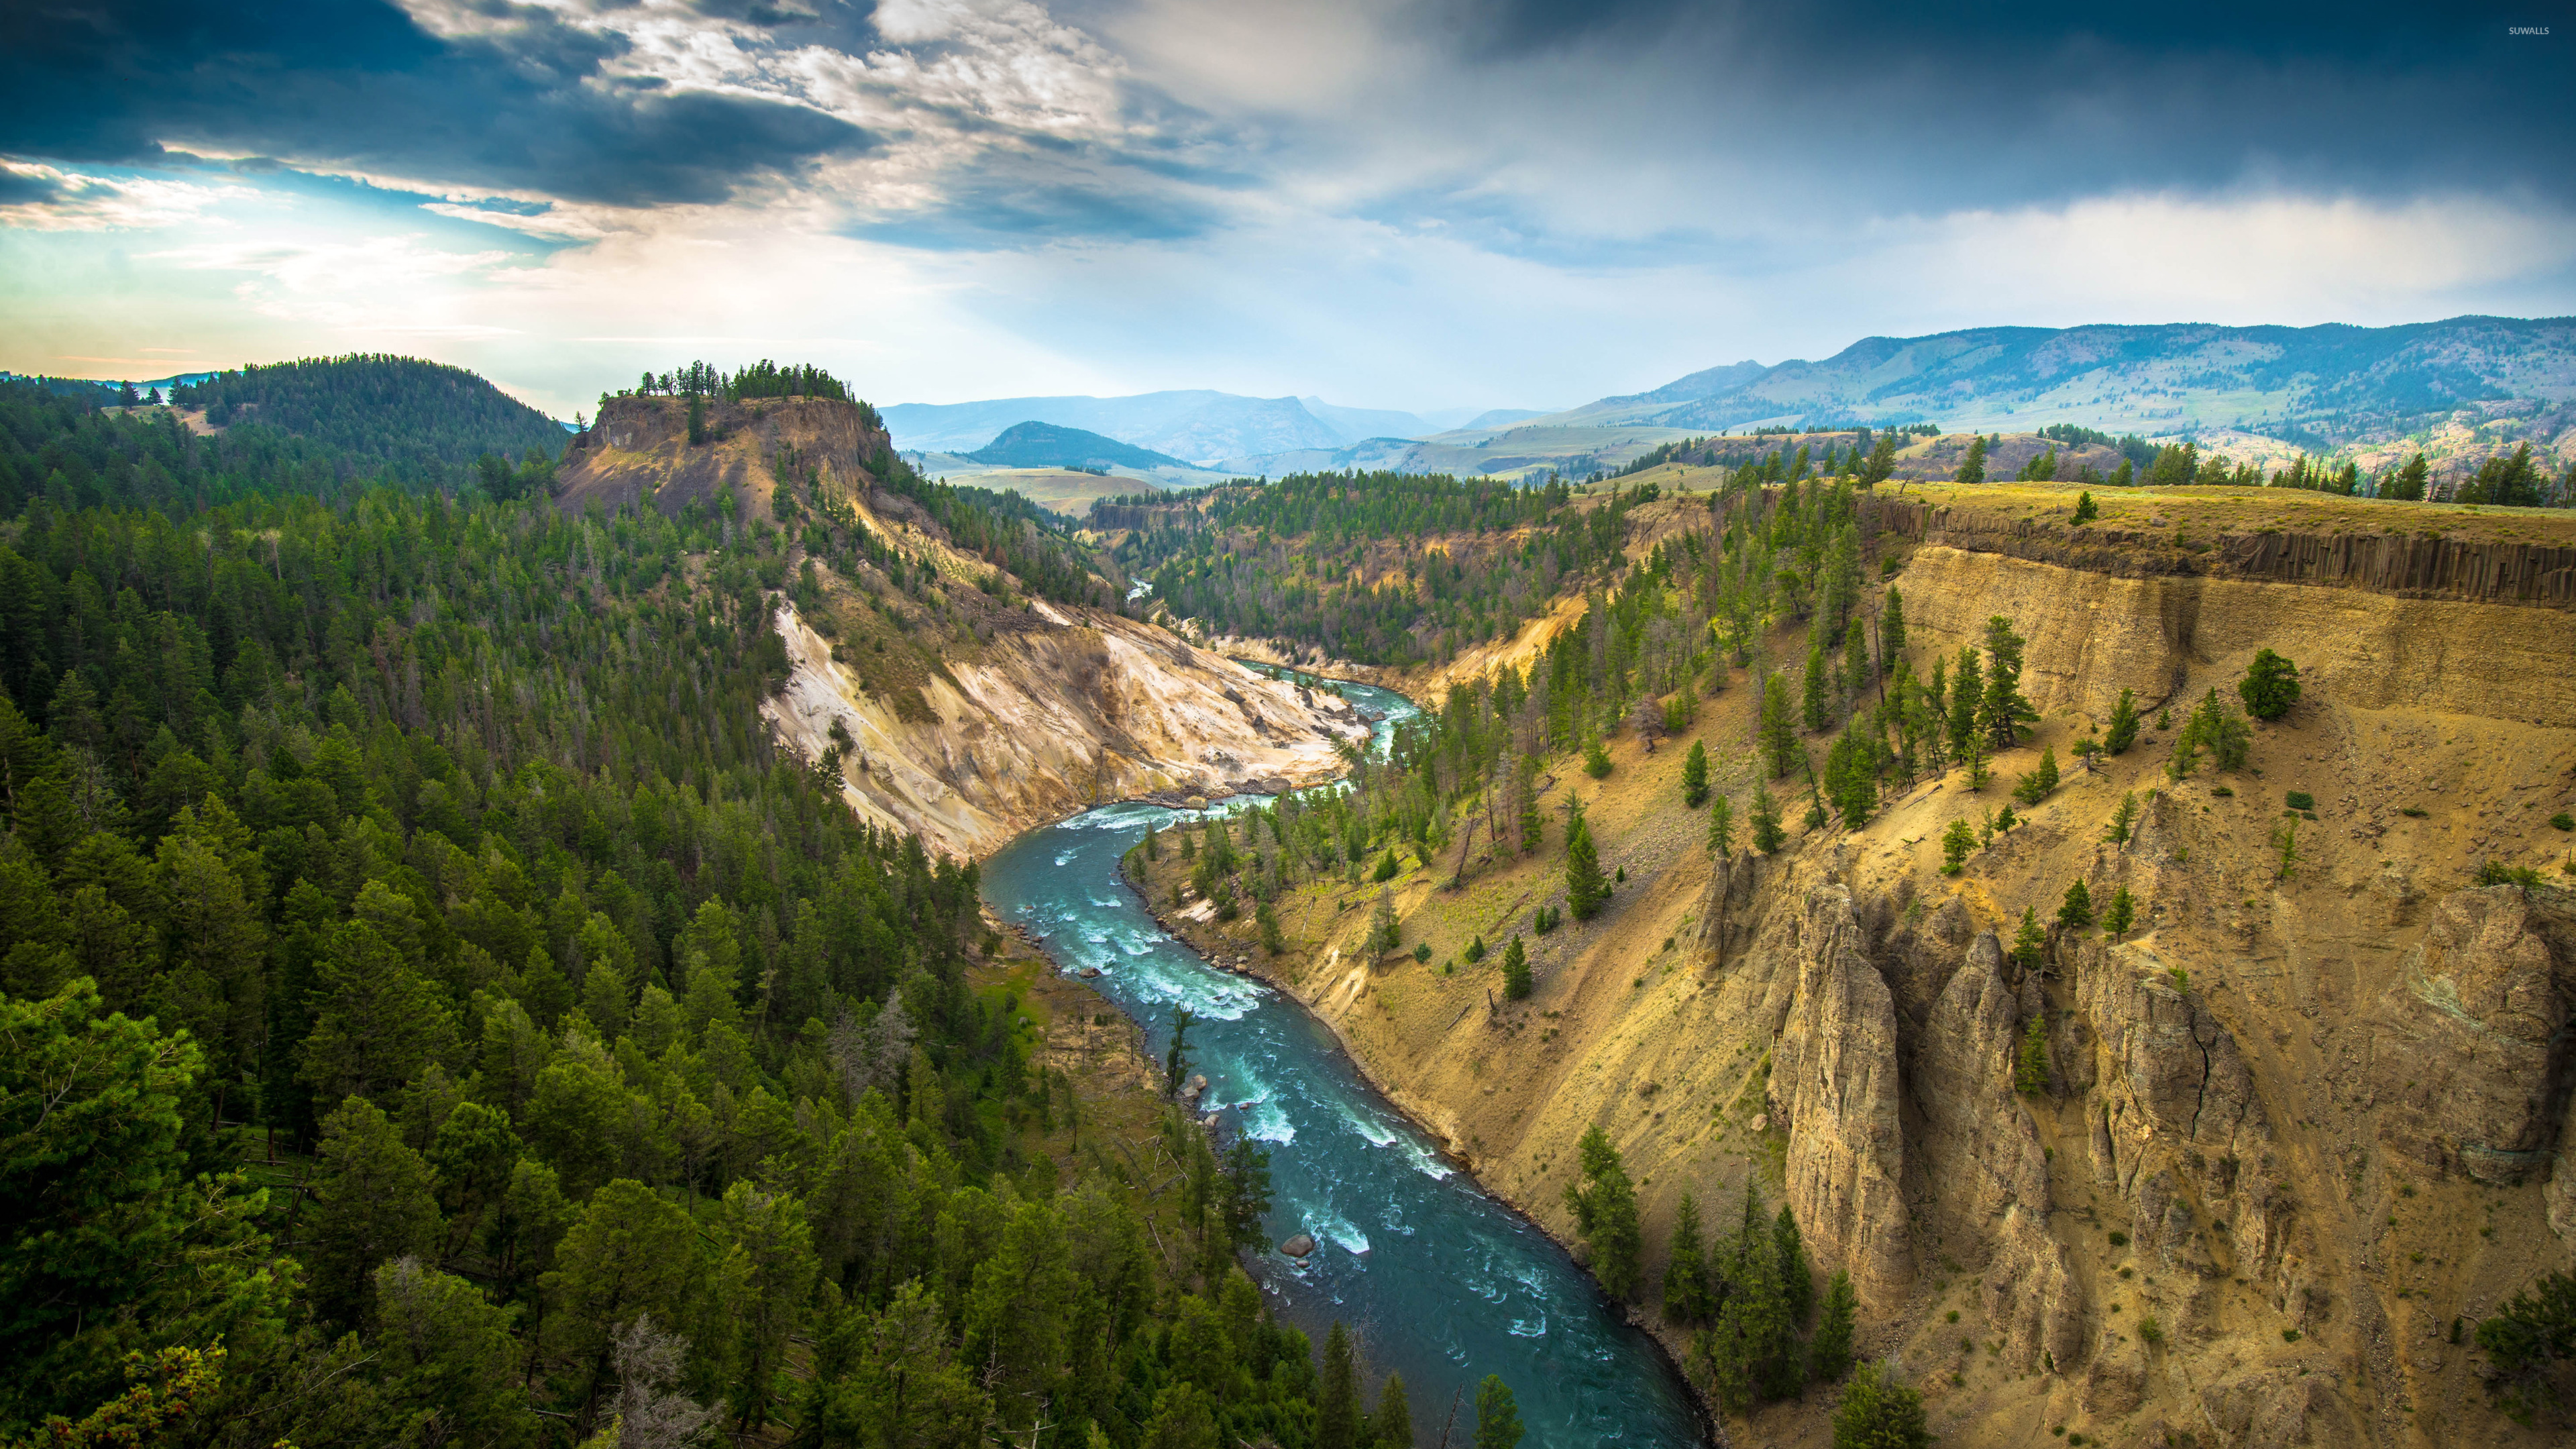 Yellowstone National Park Wallpapers and Background Images   stmednet 3840x2160